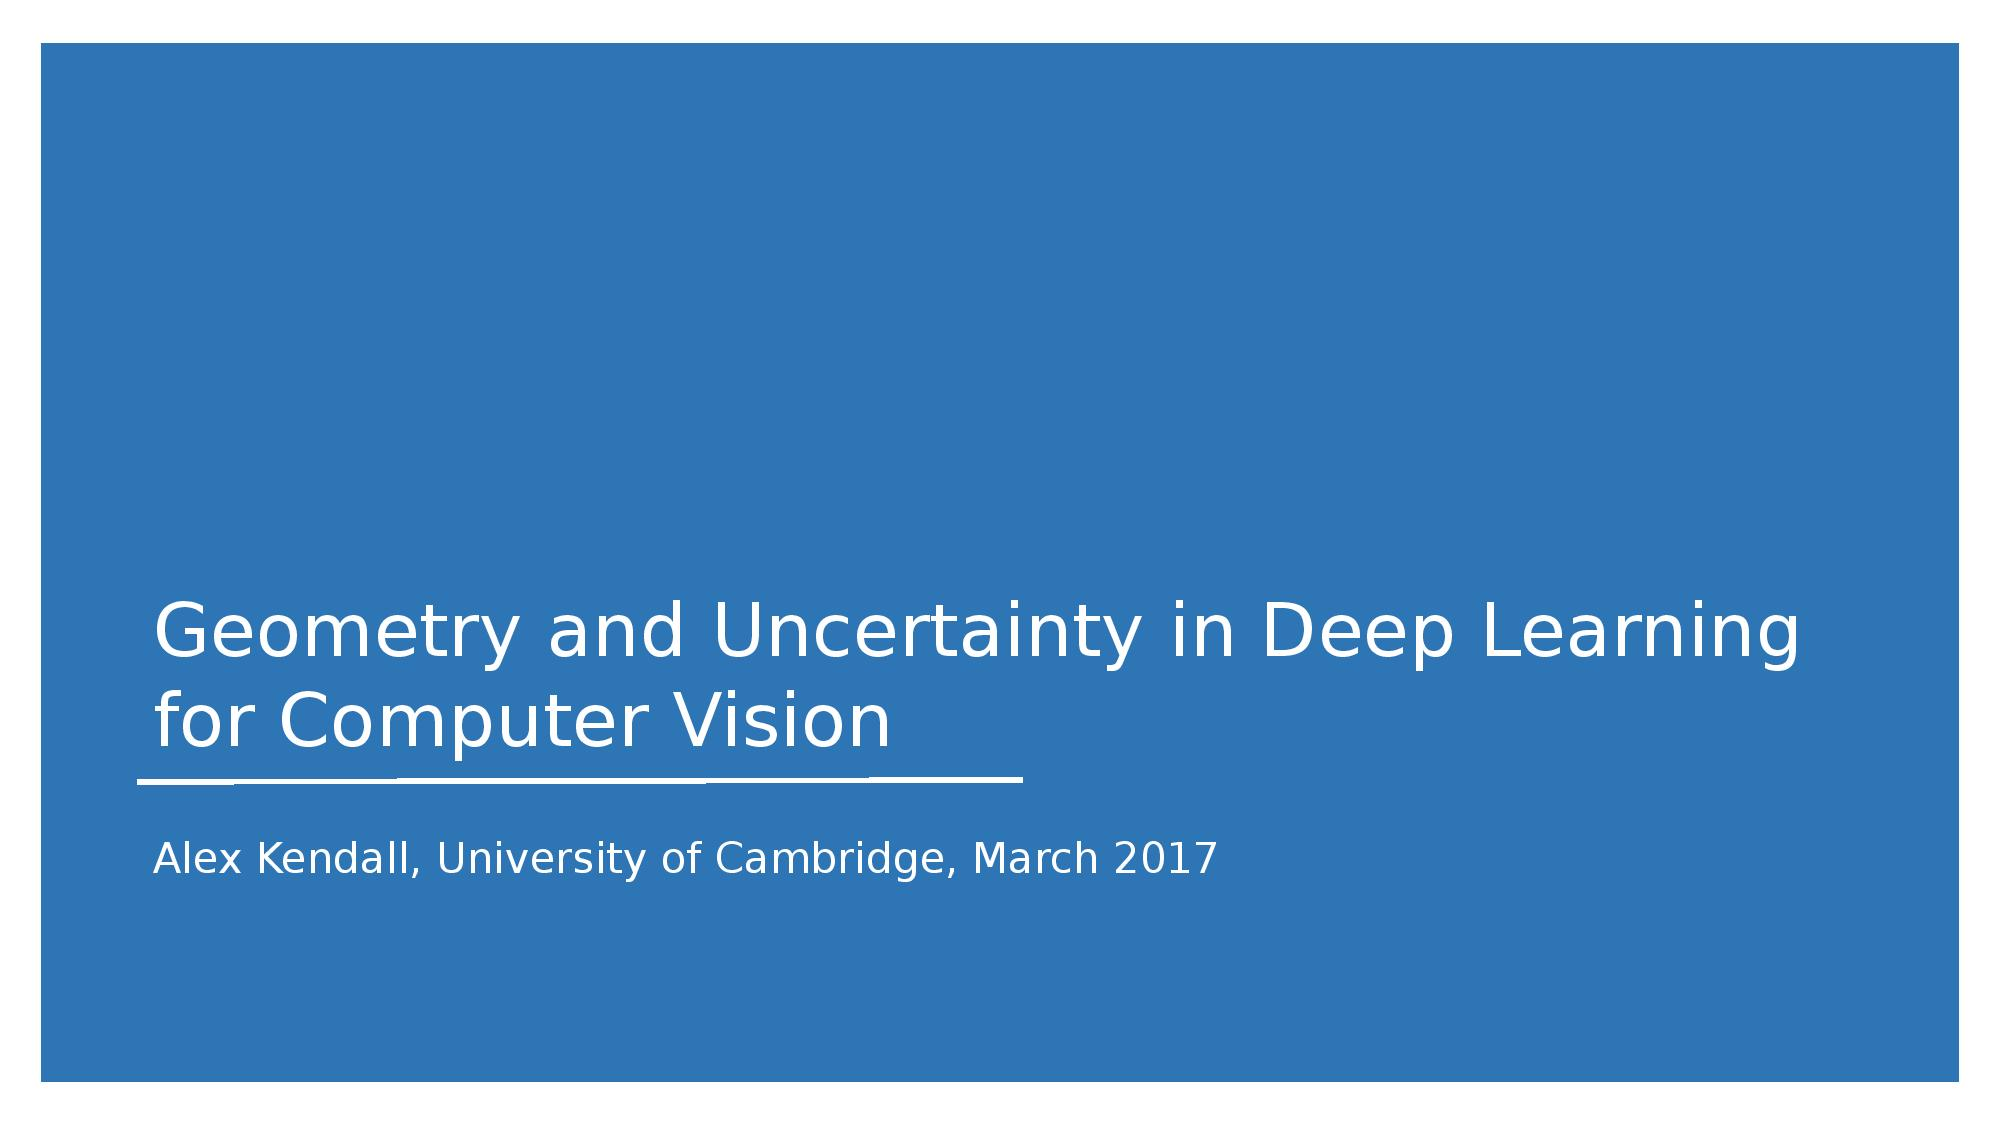 Alex Kendall: Geometry and Uncertainty in Deep Learning for Computer Vision